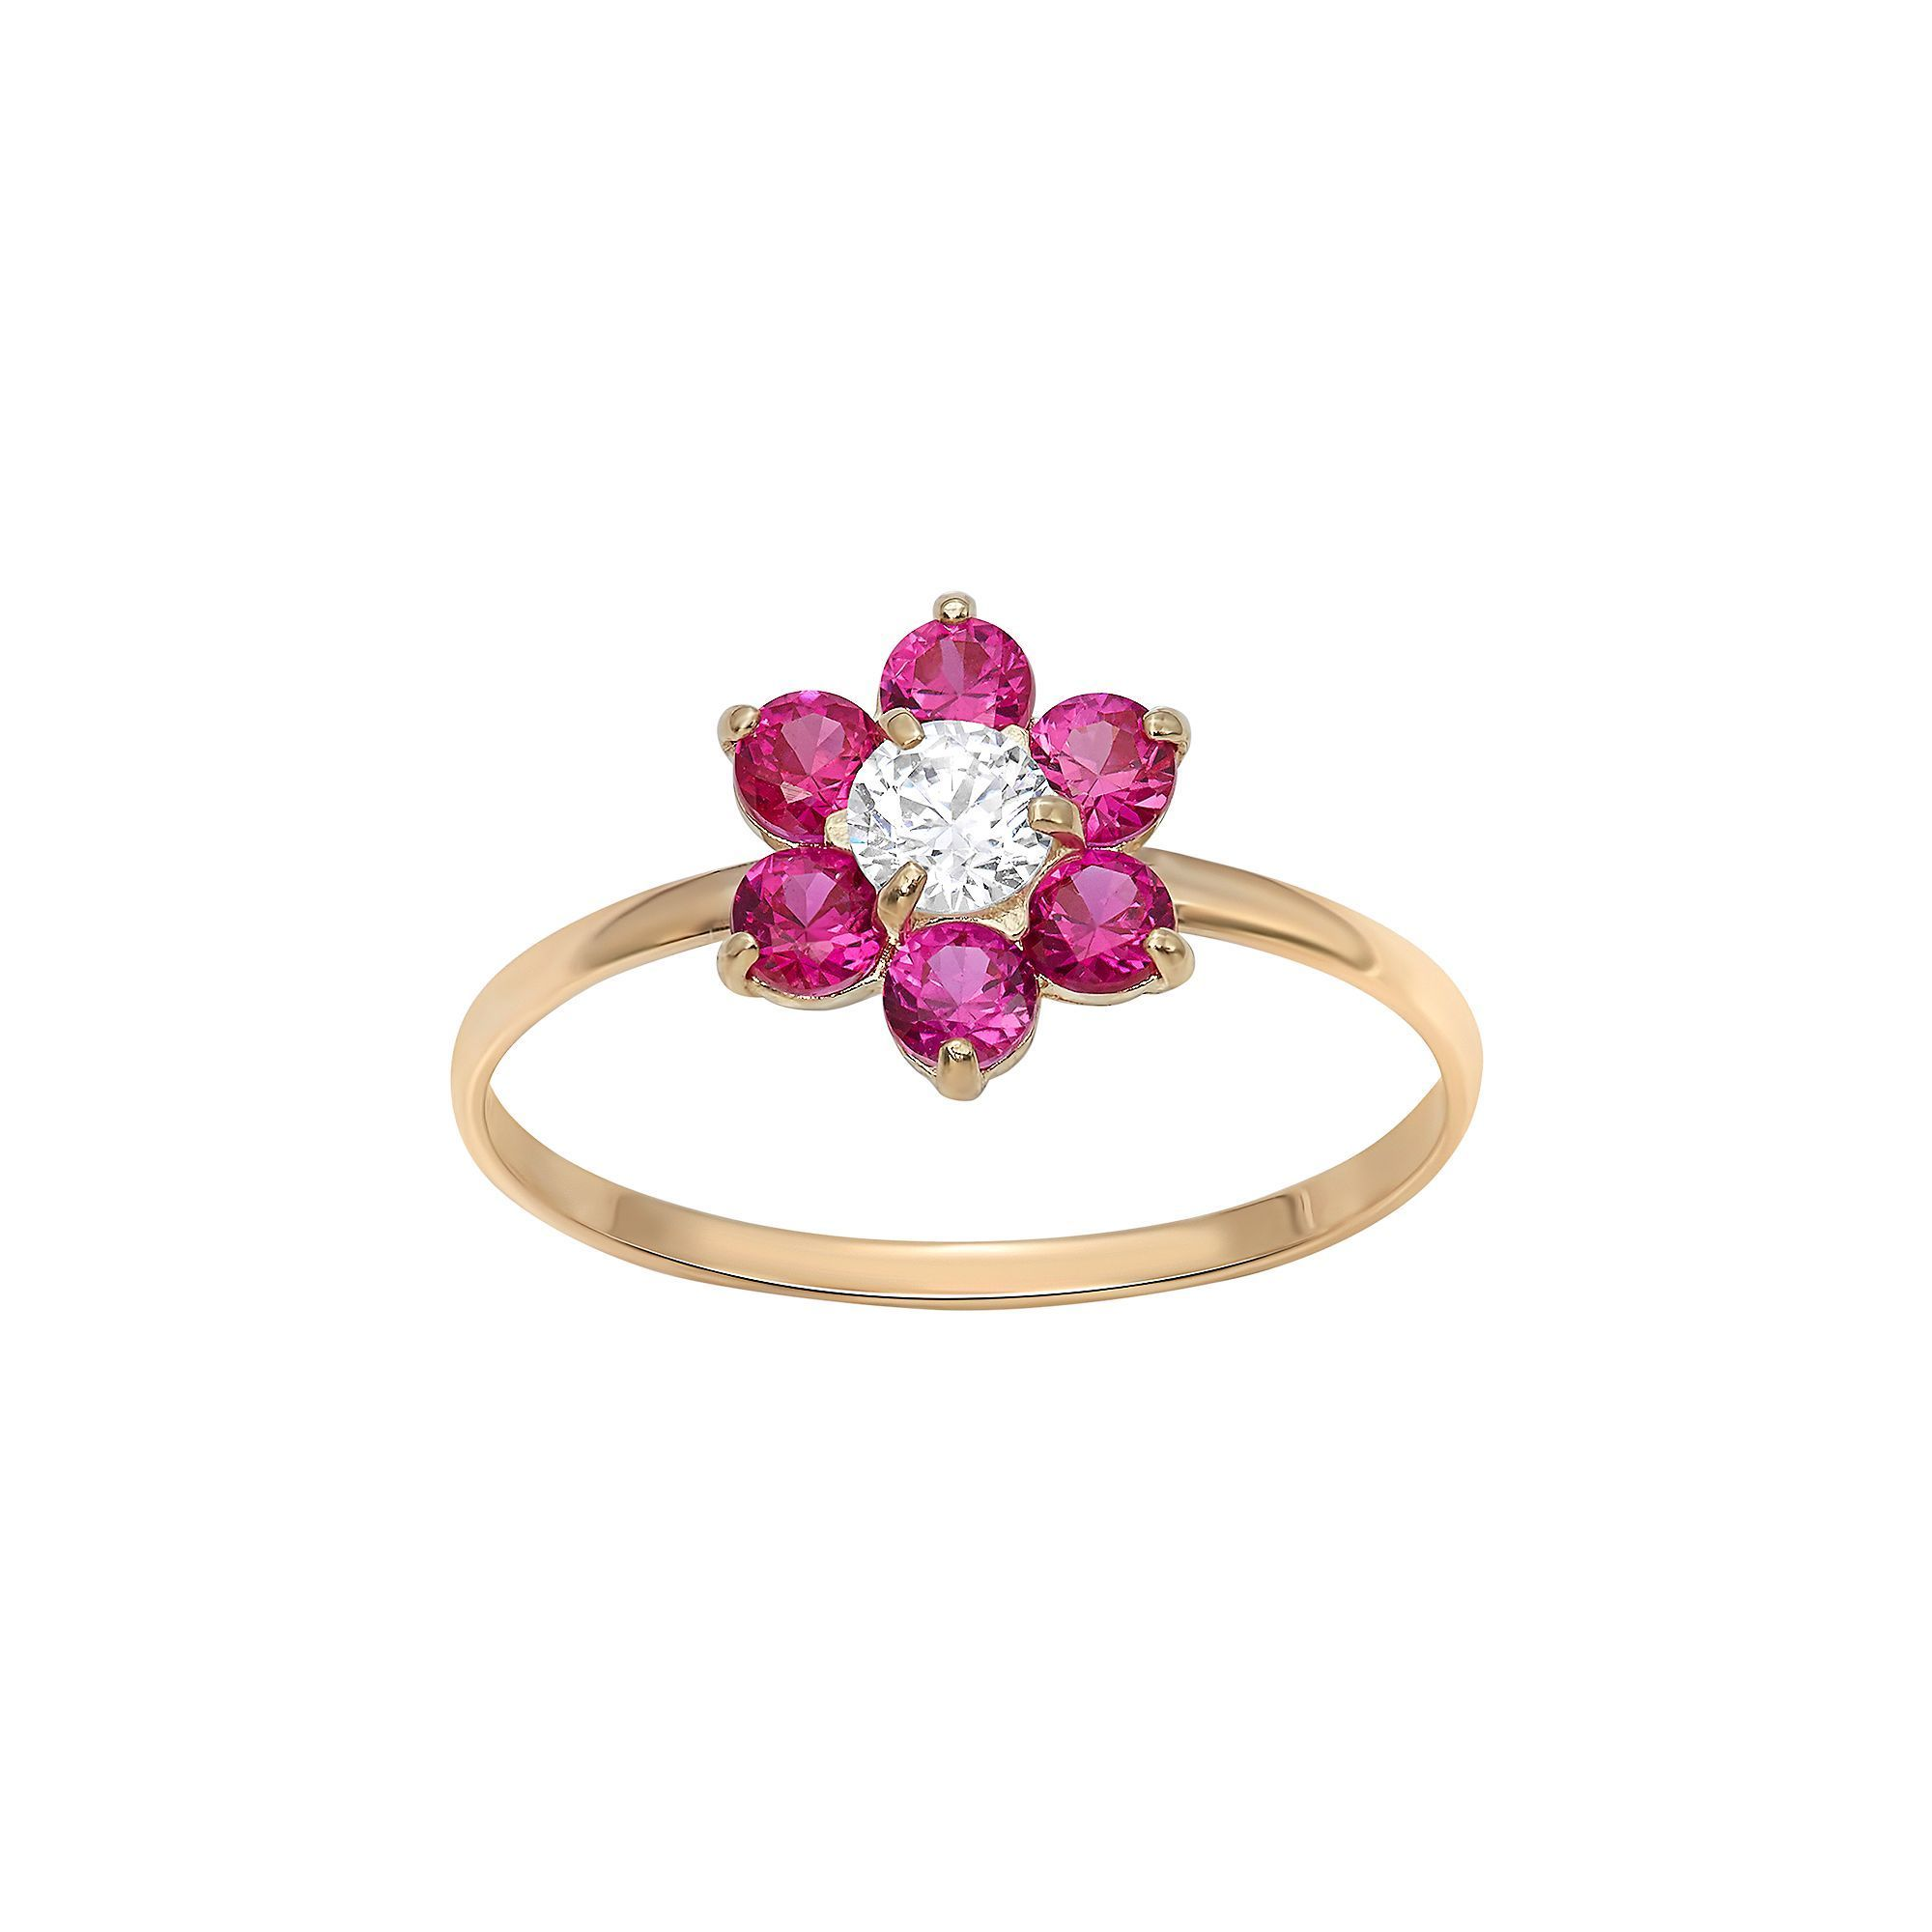 Solid 14k Yellow Gold Flower Ring CZ Three Flowers Band Right Hand Fashion Style